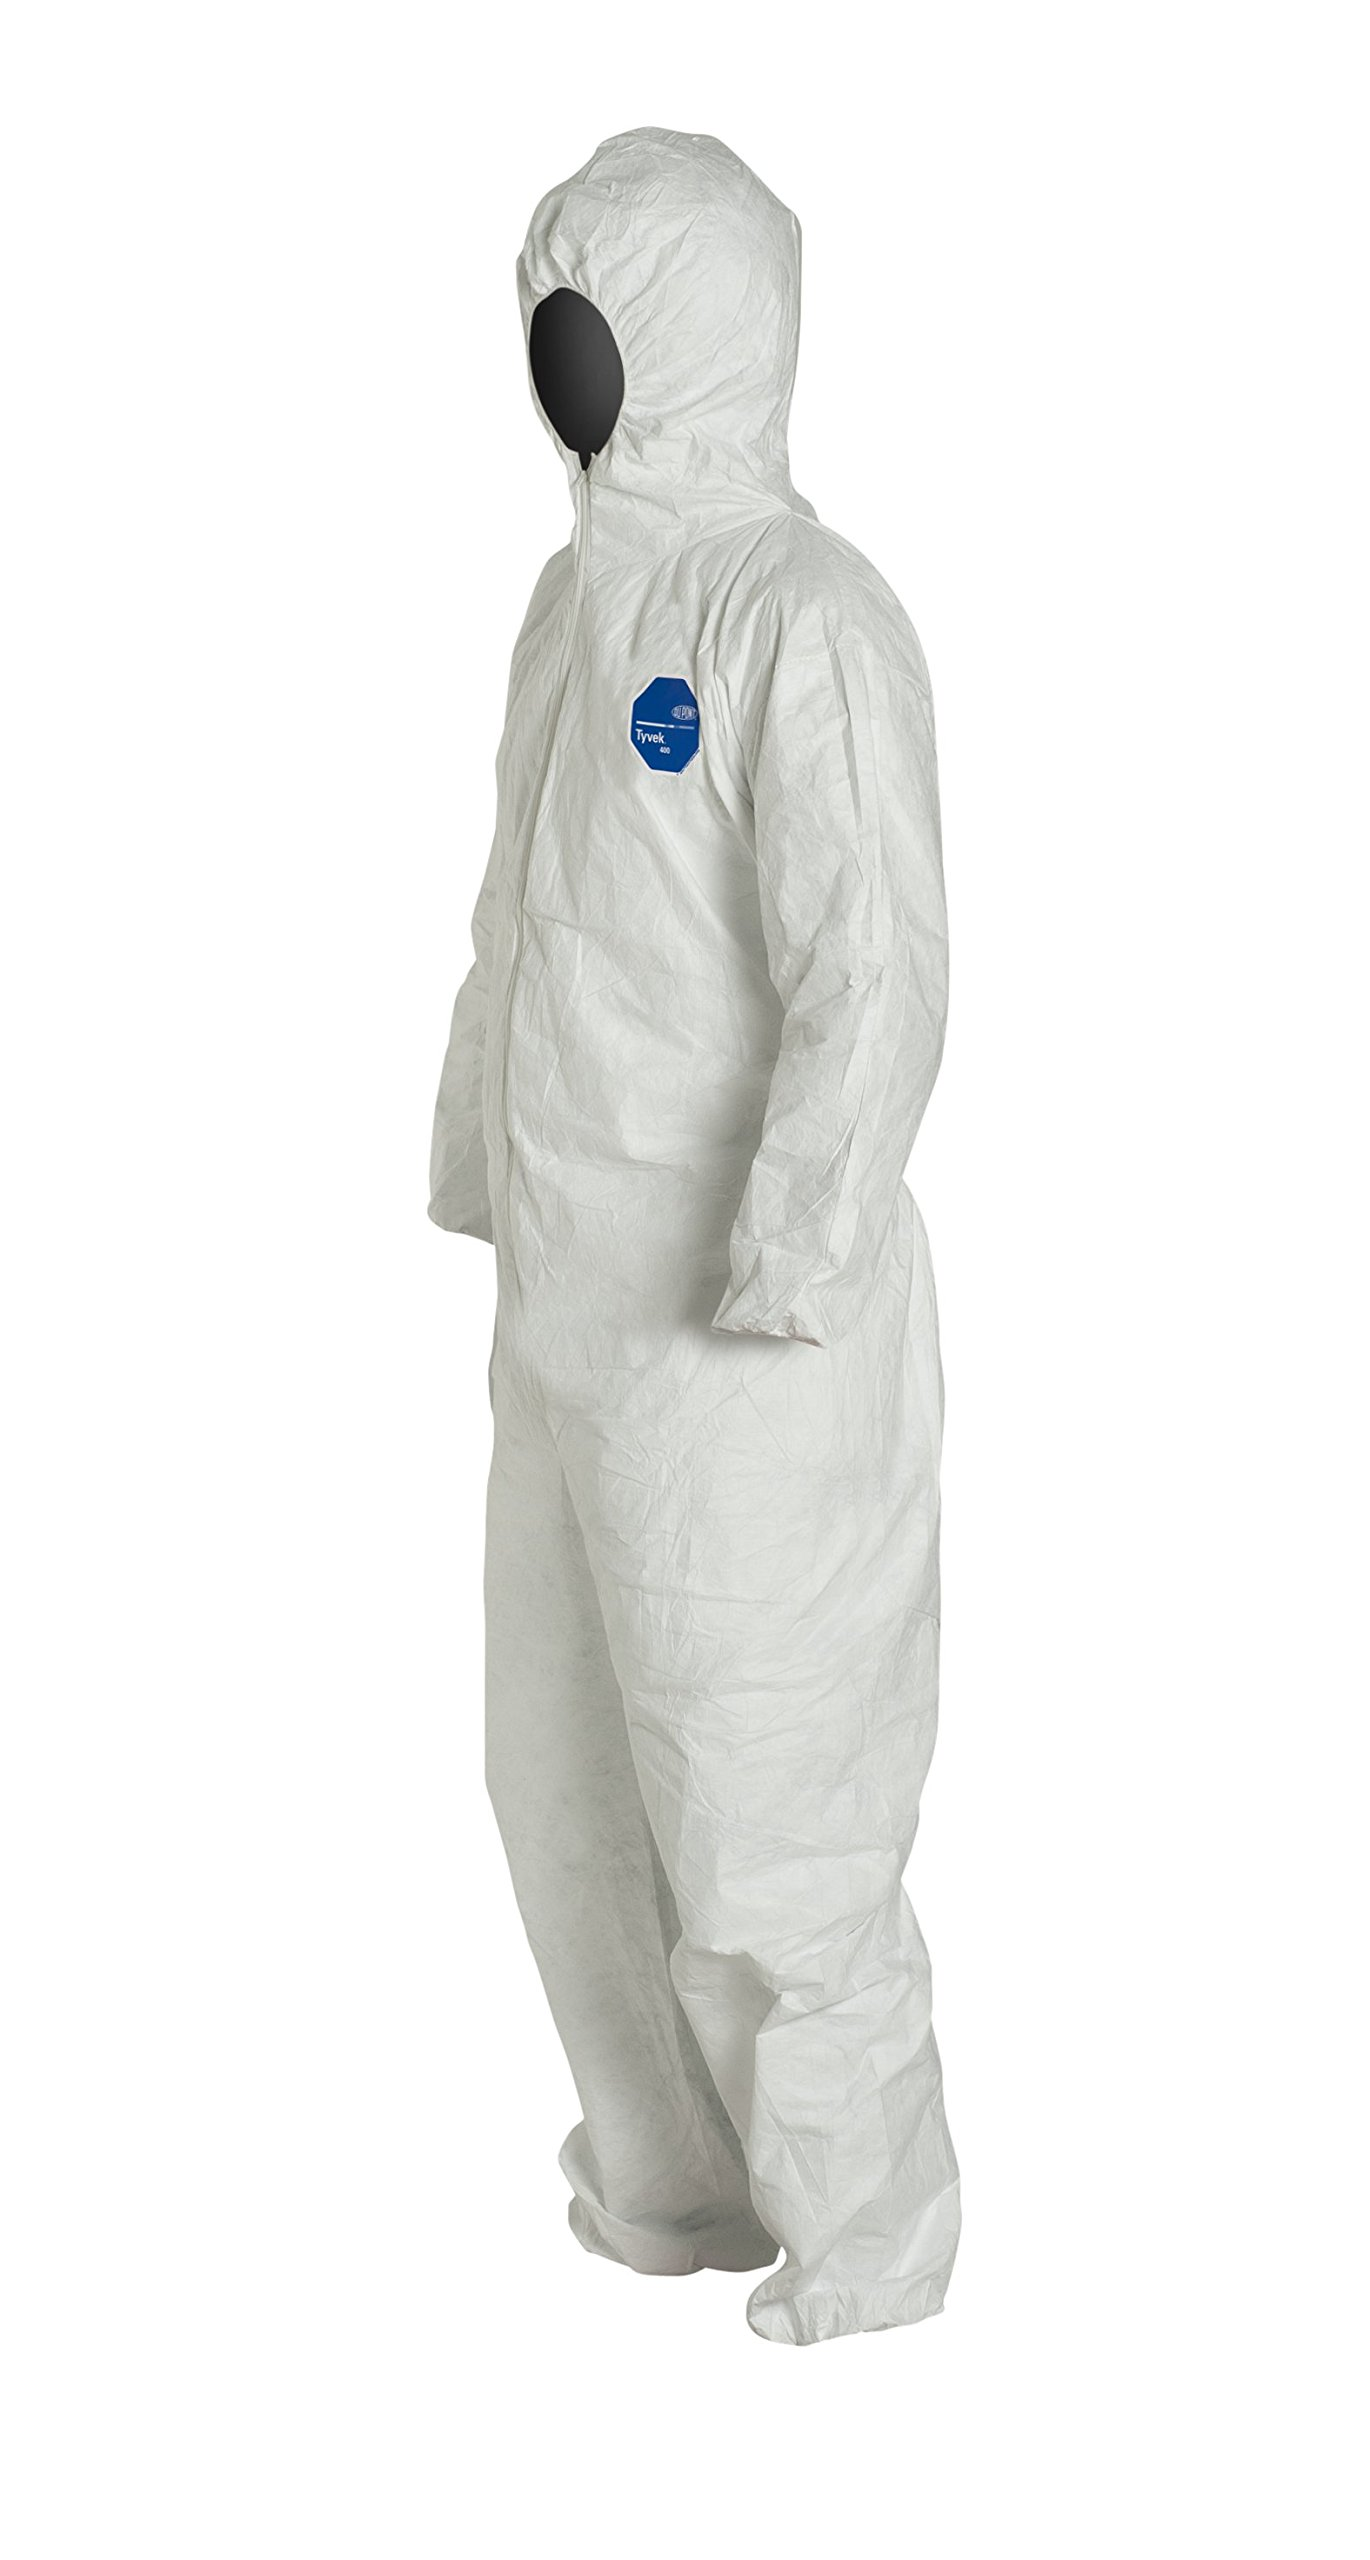 DuPont Tyvek 400 TY127S  Protective Coverall with Hood, Disposable, Elastic Cuff, White, X-Large (Pack of 25) by DuPont (Image #5)